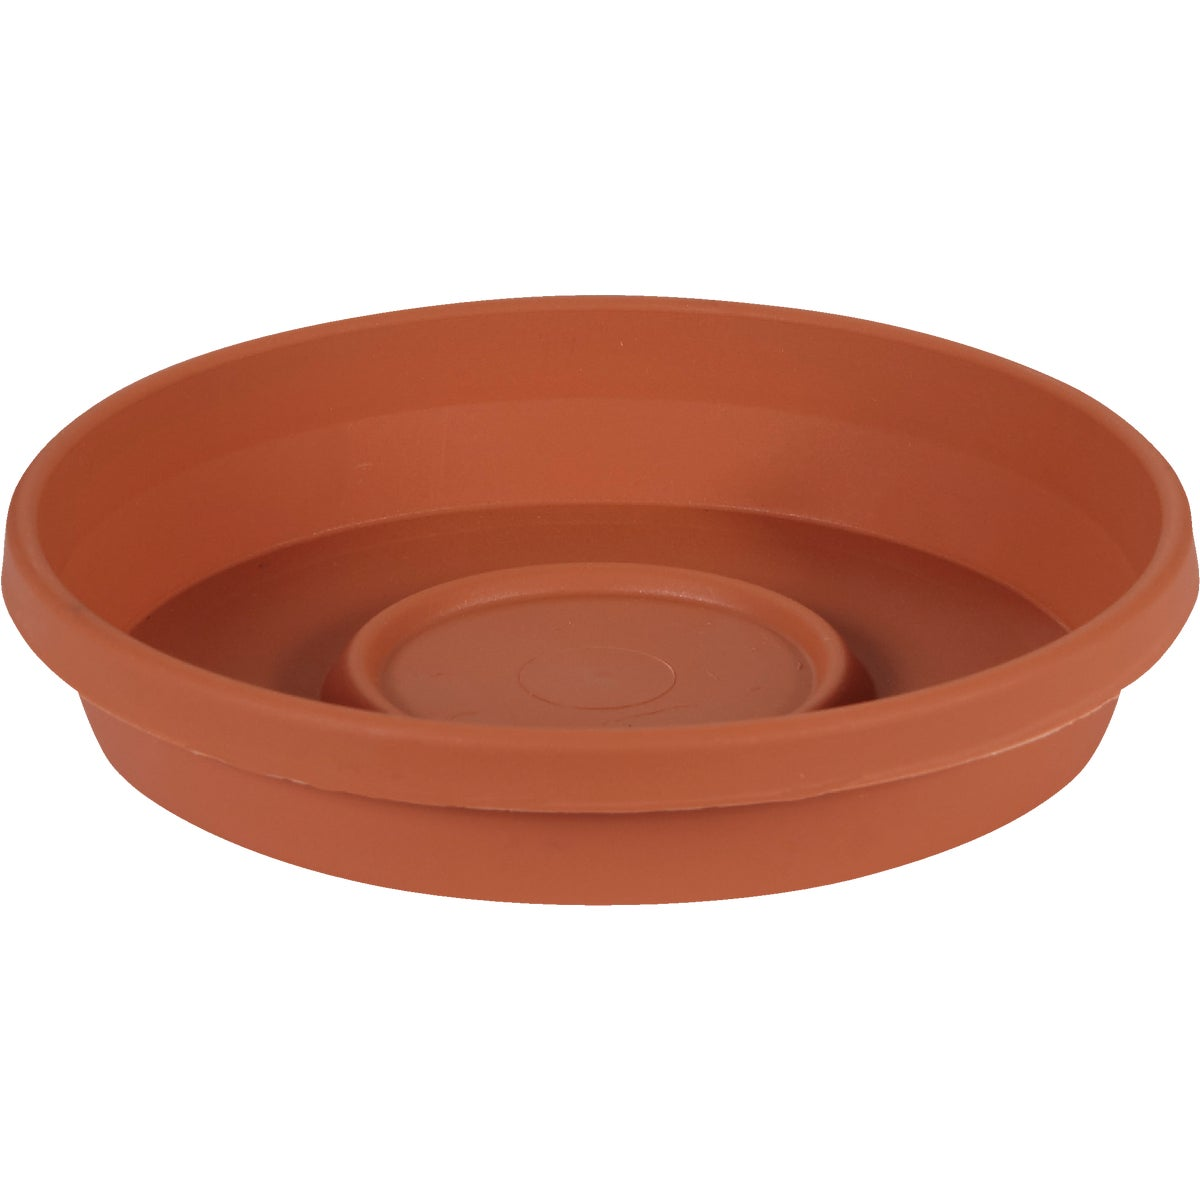 "14"" CLAY POLY SAUCER - 51014C by Fiskars Brands Inc"